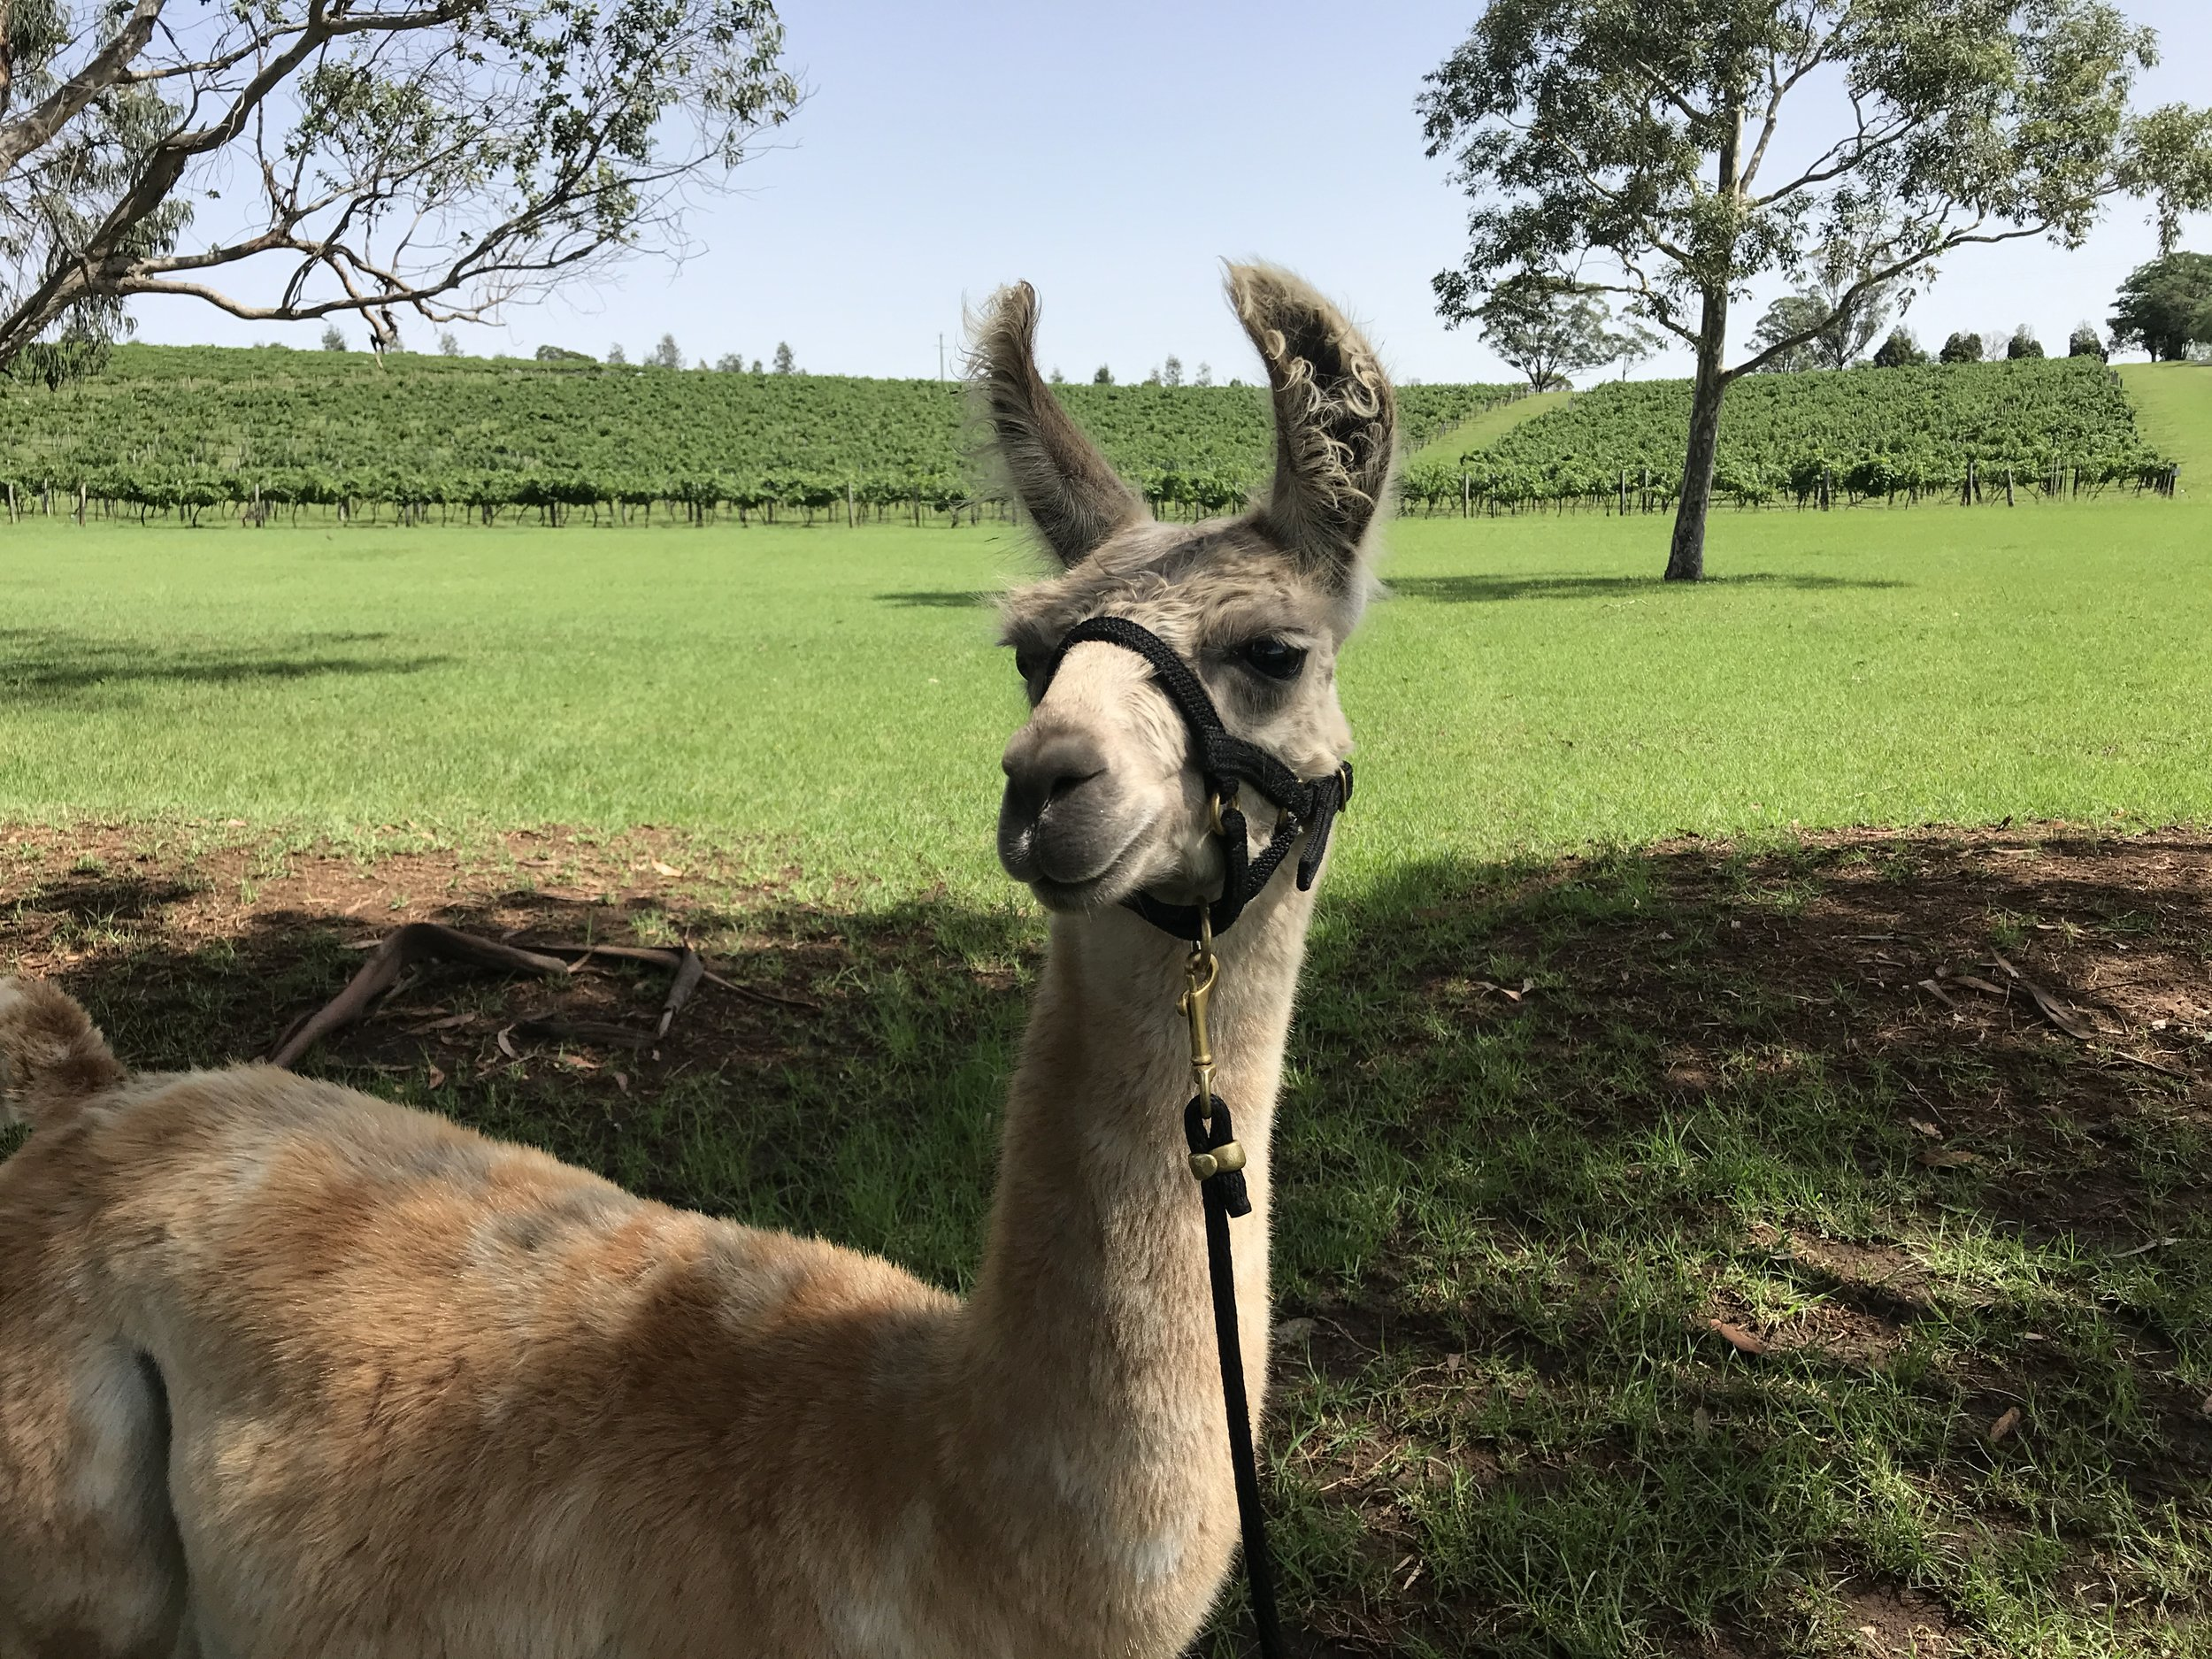 Silverado - Silverado is one of our youngest working llamas. His best mate is Spudnik and the two of them are inseparable! He enjoys coming out on the llama walks and is enjoying learning more about the world with his human and llama friends!